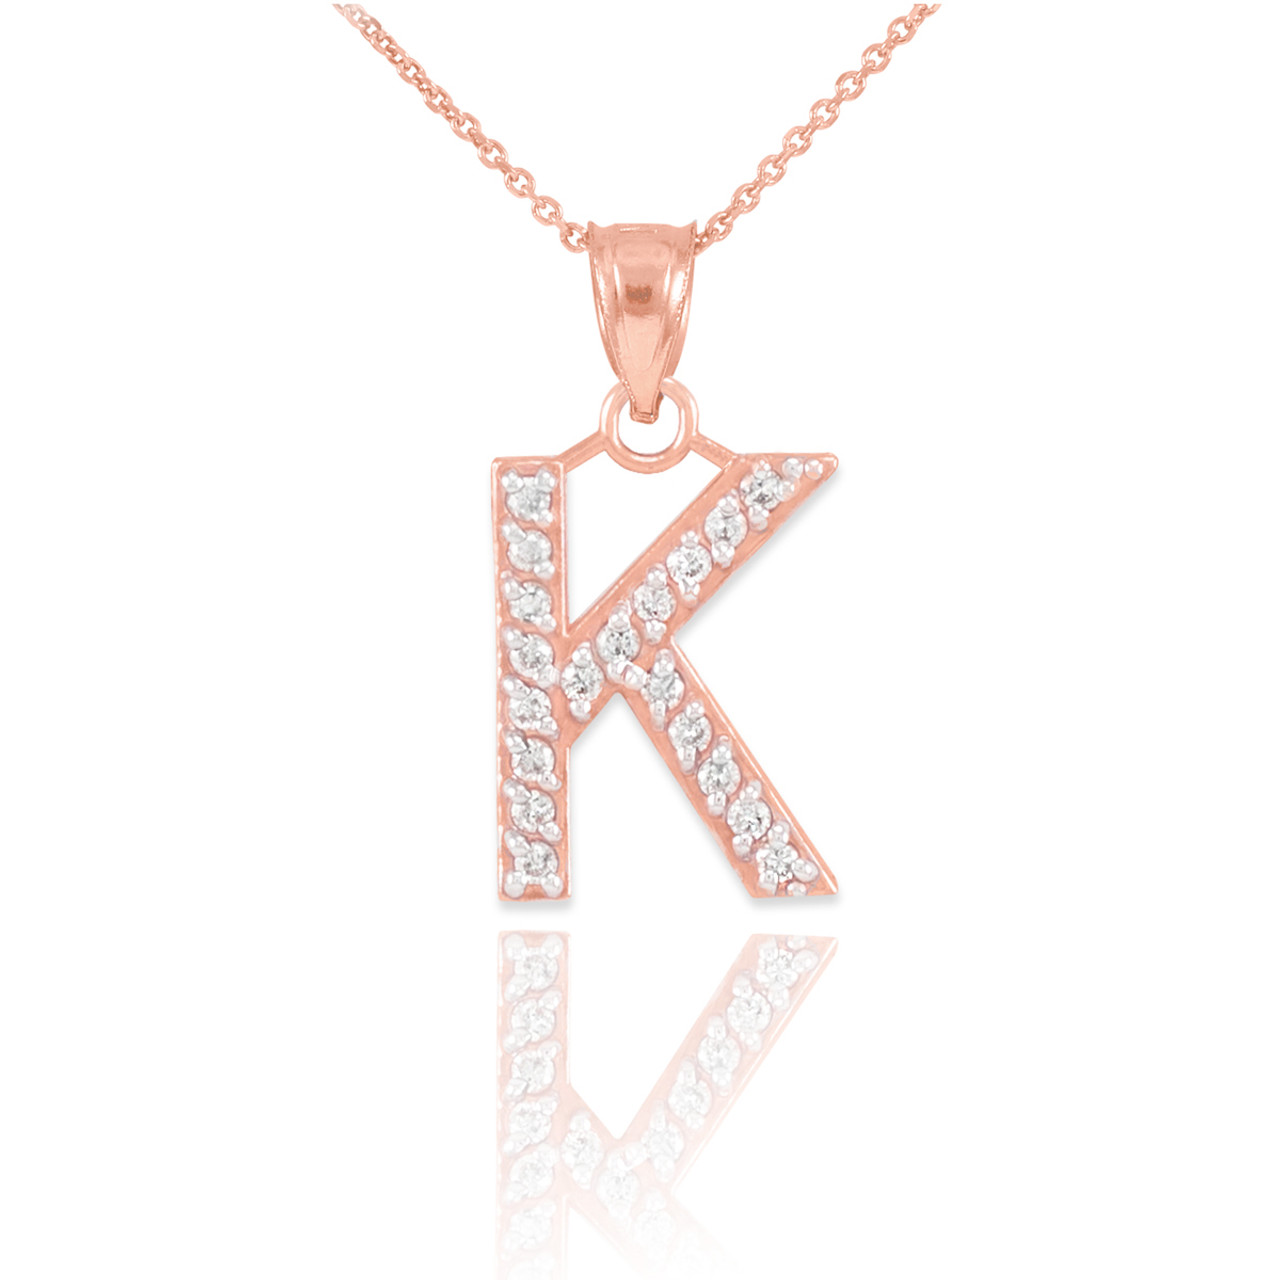 Rose gold letter k diamond initial pendant necklace aloadofball Choice Image